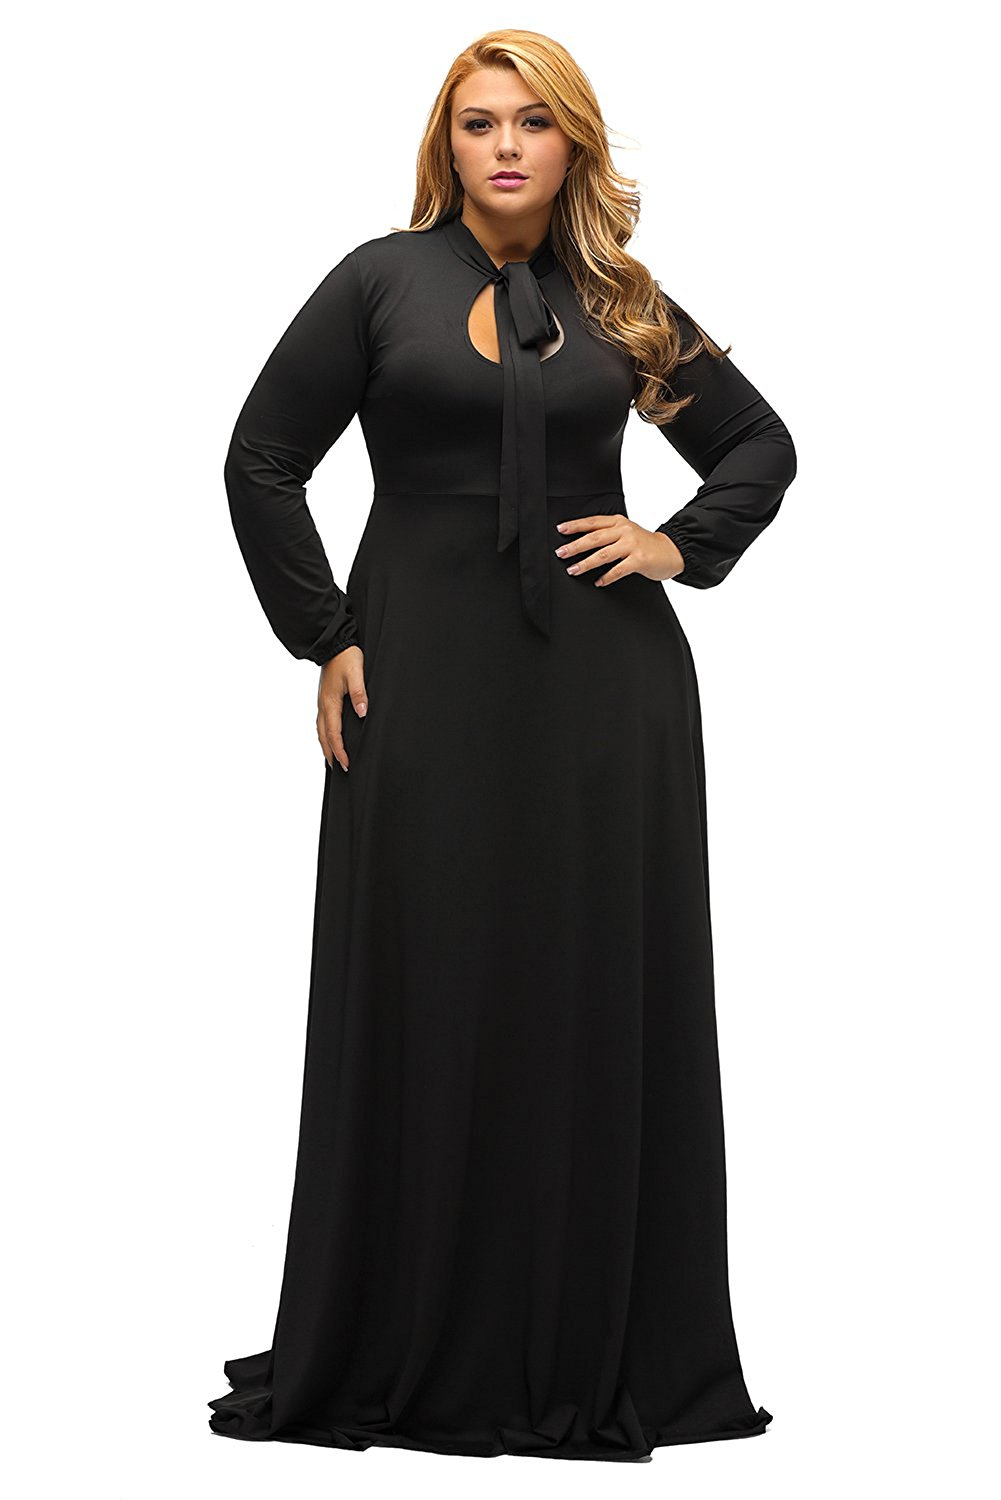 Are you a Plus Sized? Here are the information about plus size special occasion dresses